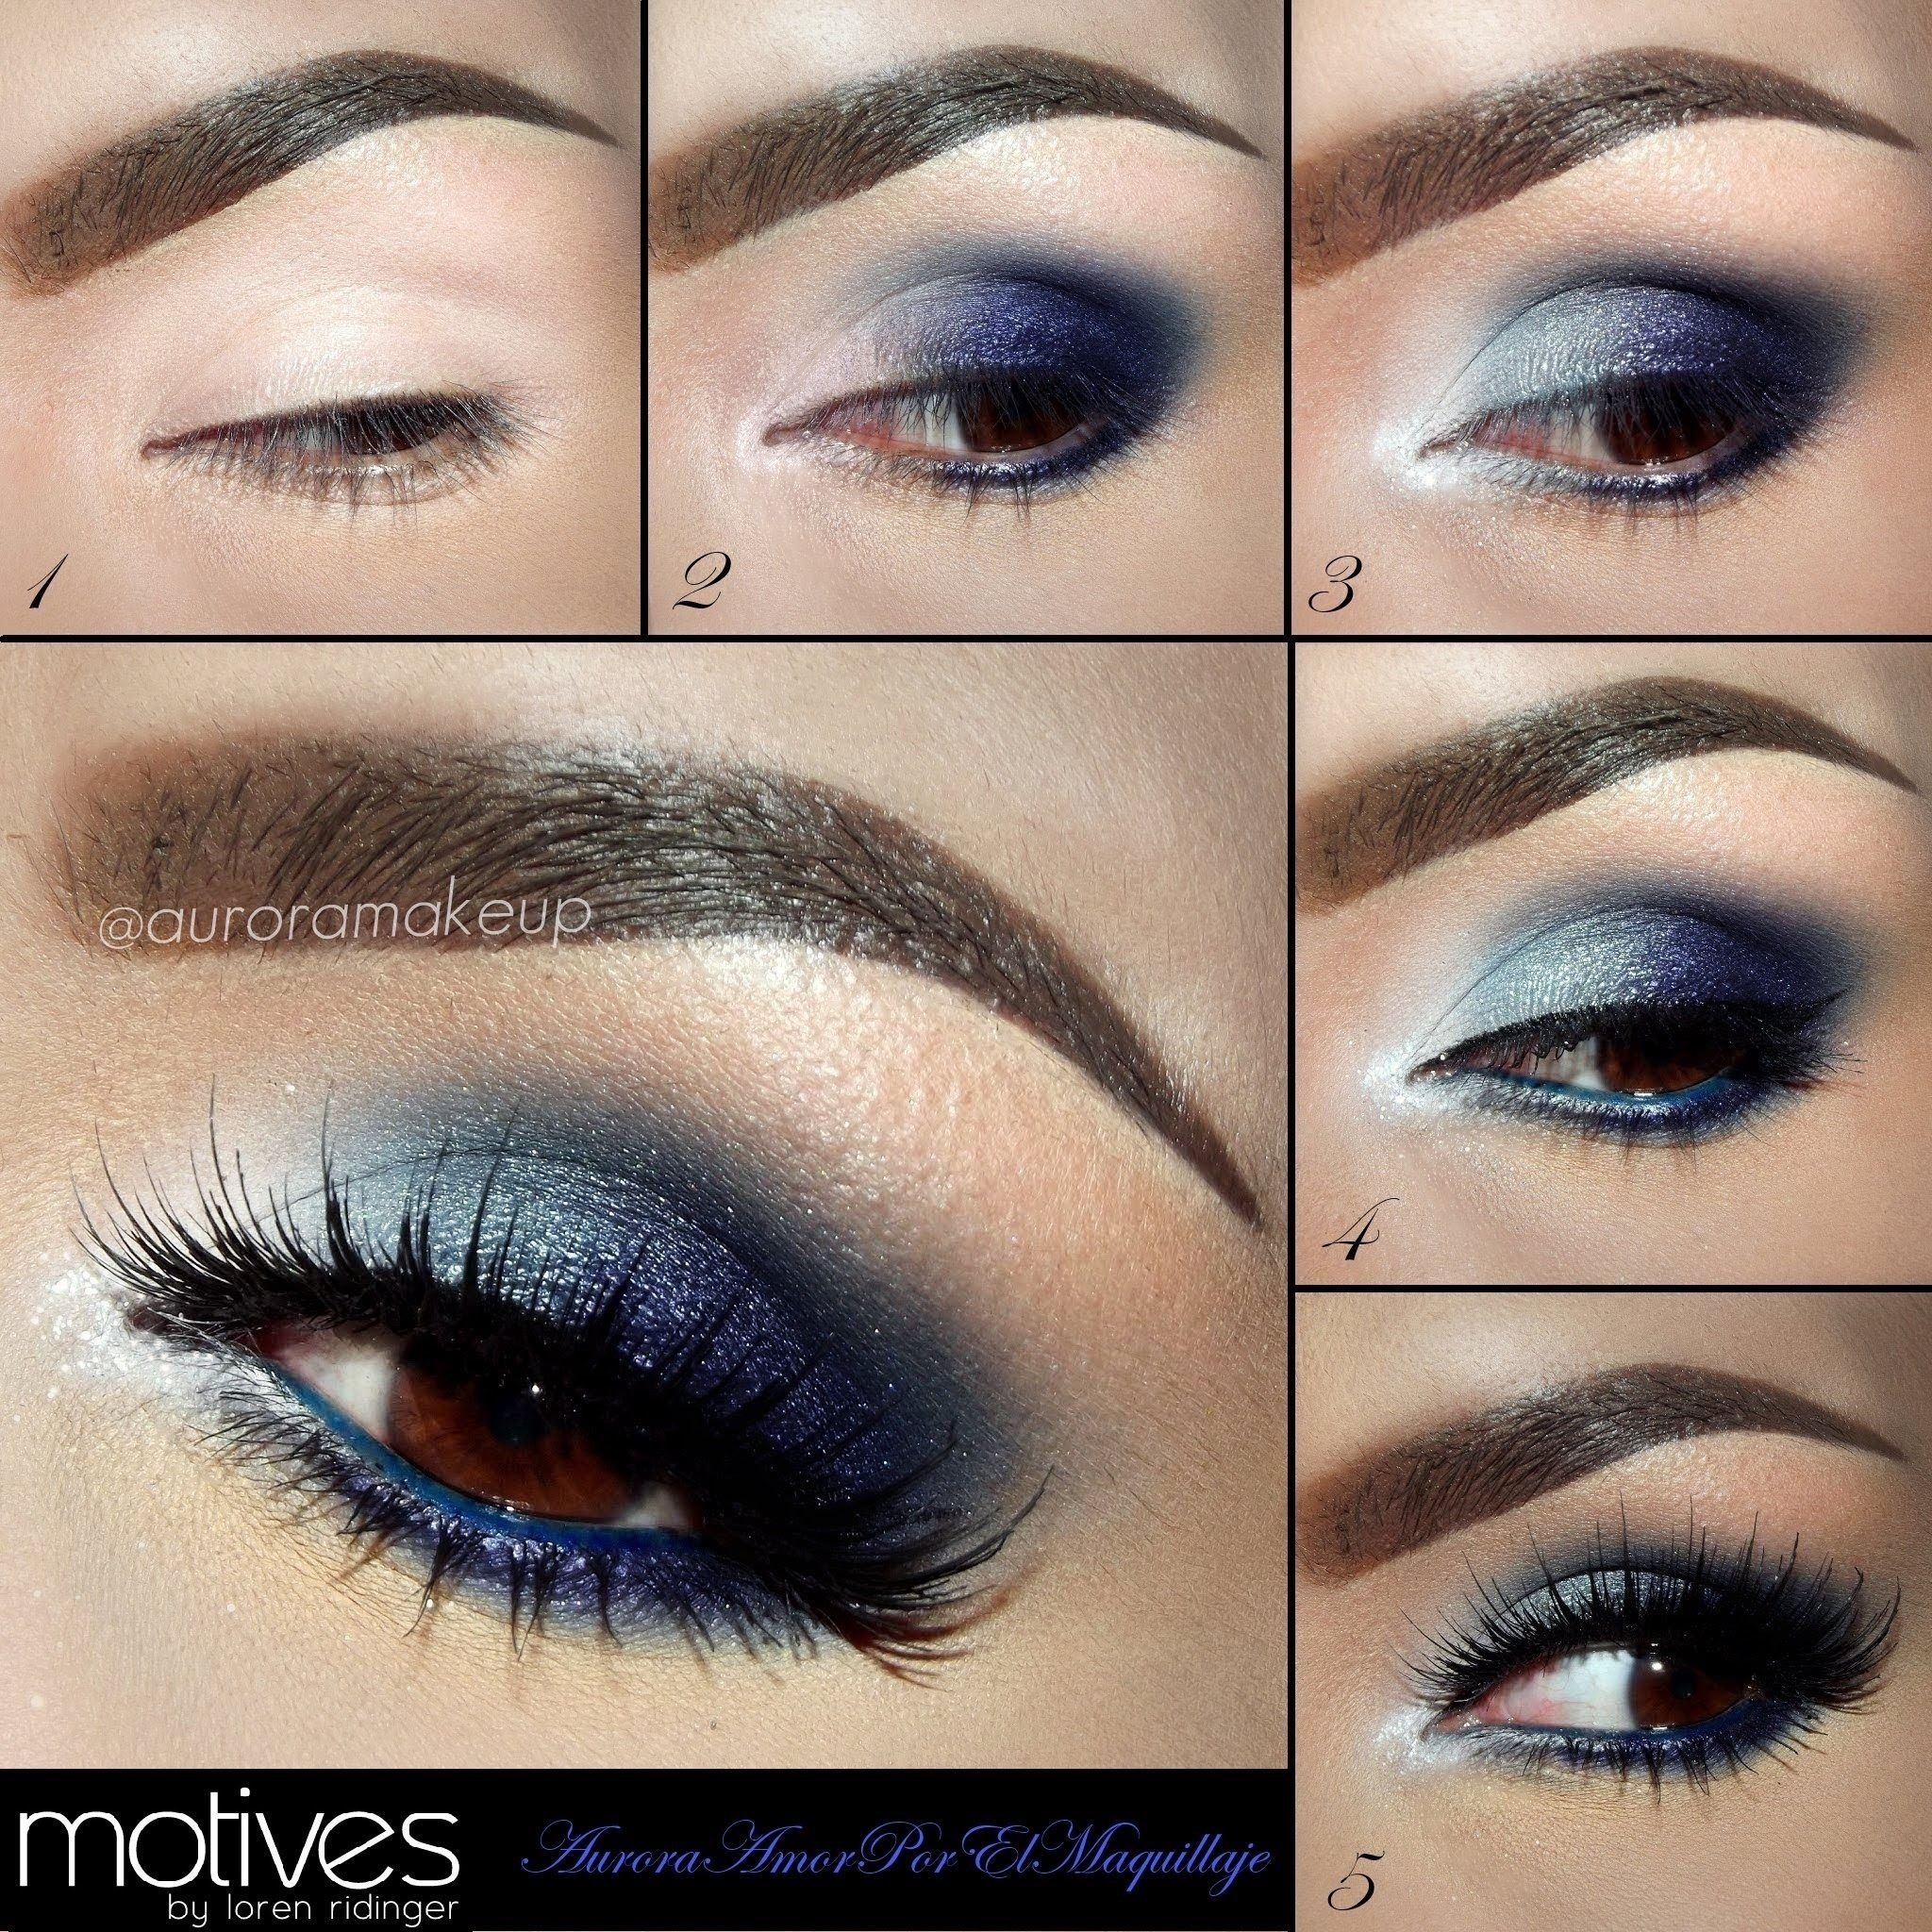 Blue Eye Shadow For Brown Eyes Tutorial With Aurora Makeup And for How To Apply Brown Eyeshadow For Blue Eyes